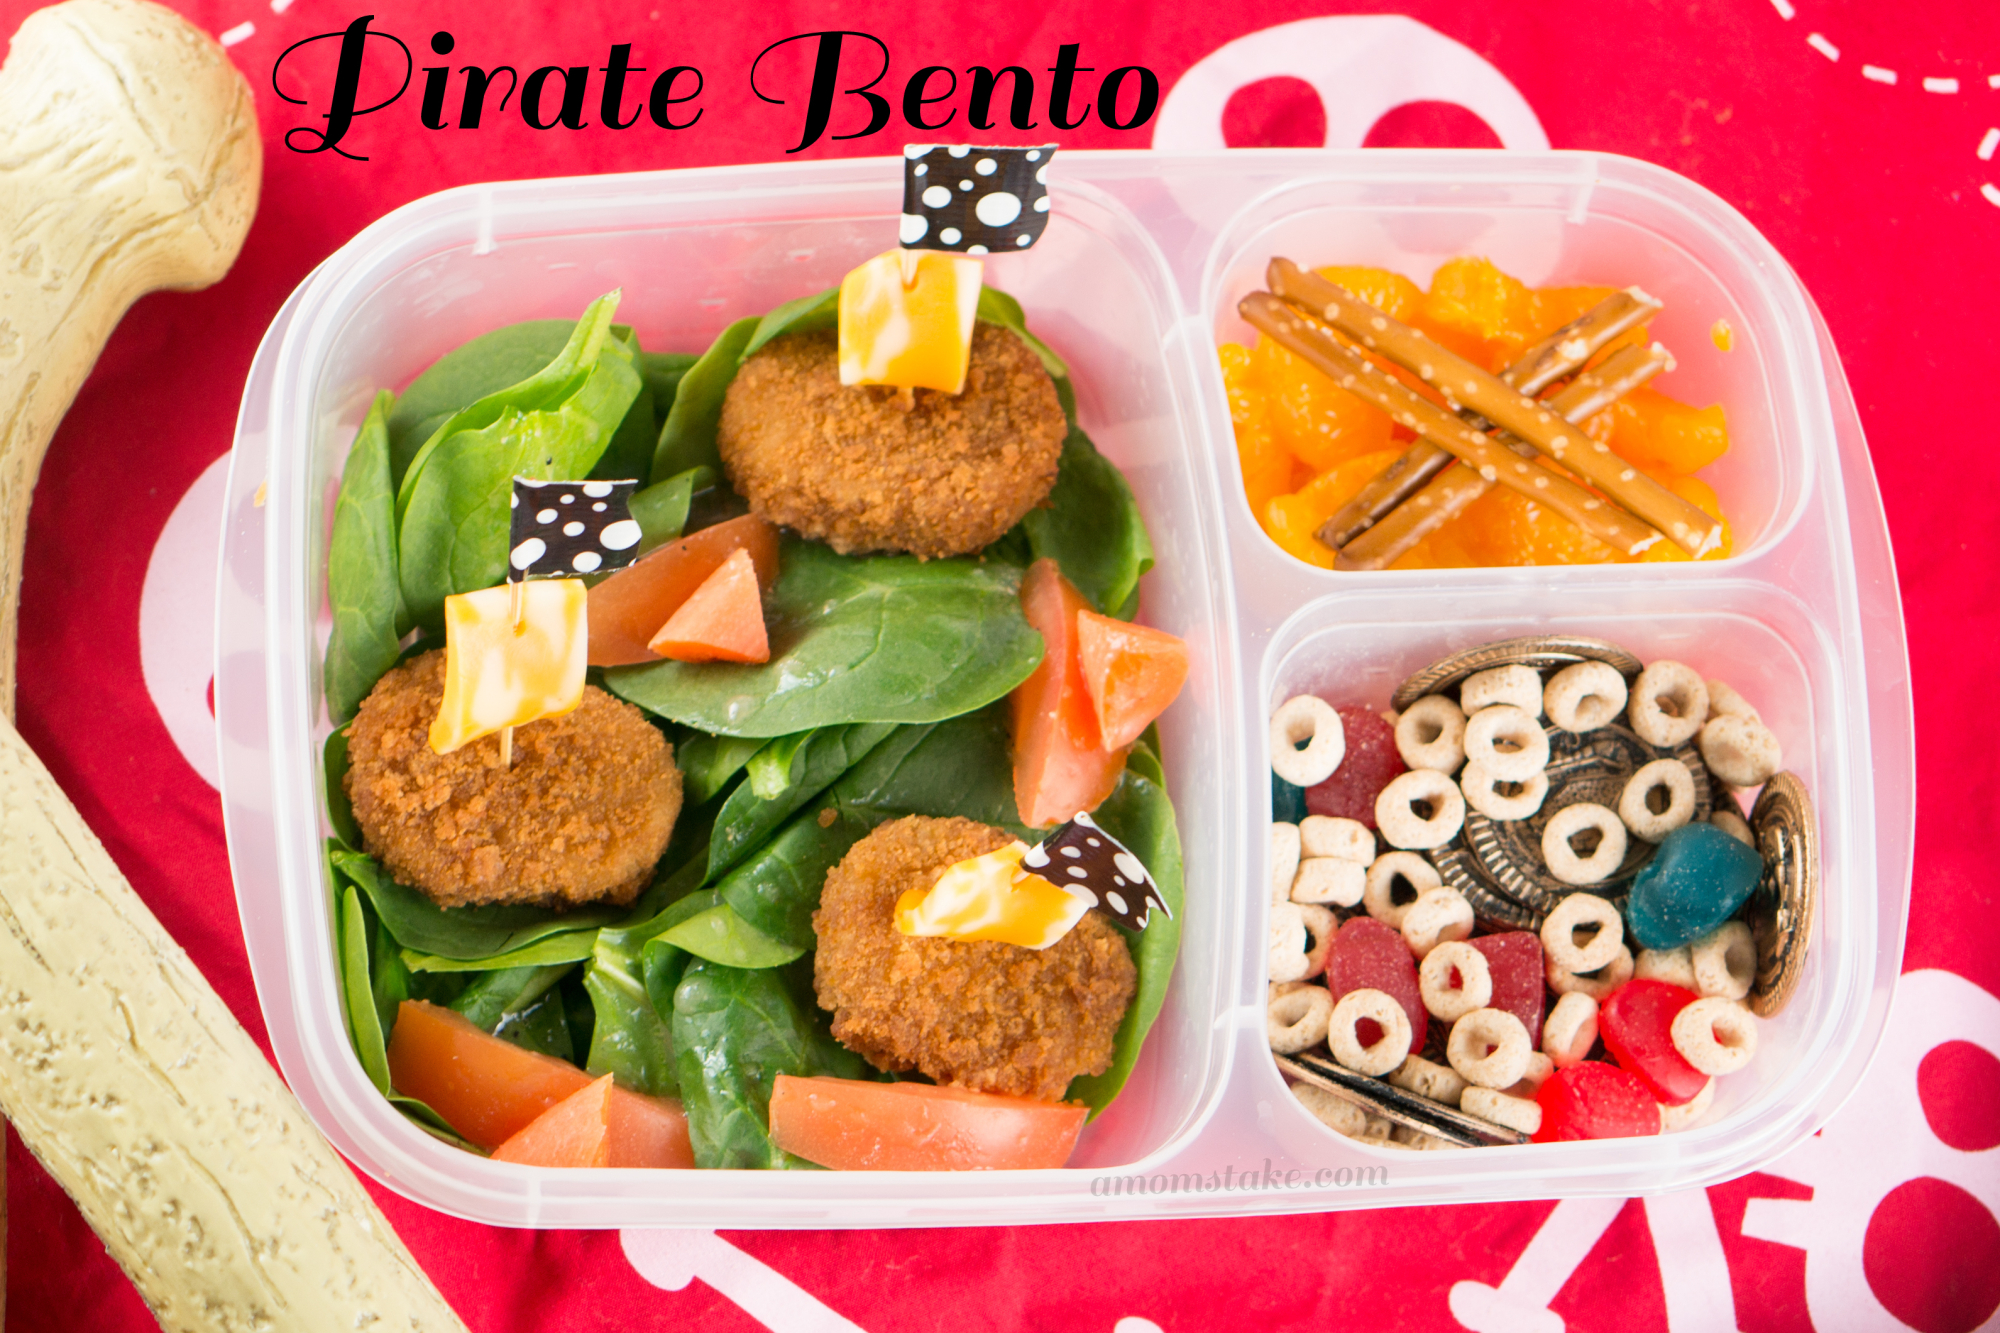 Meatless Lunch Pirate Bento Box: 10 School Lunchbox Ideas Your Kid Will Love | Cheap Is The New Classy